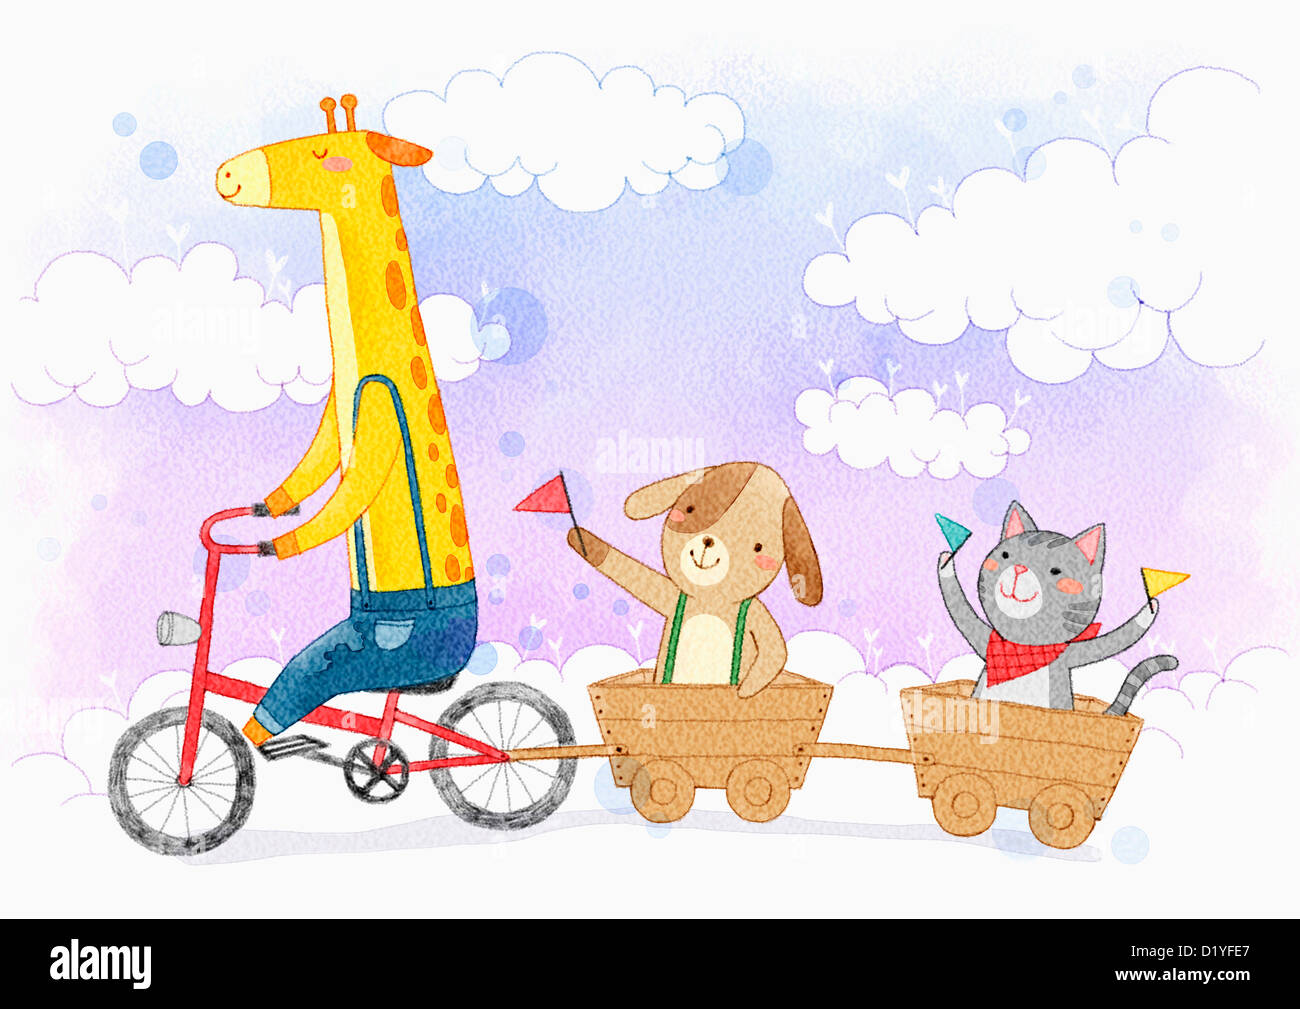 illustration of a giraffe riding a bike pulling dog and cat in